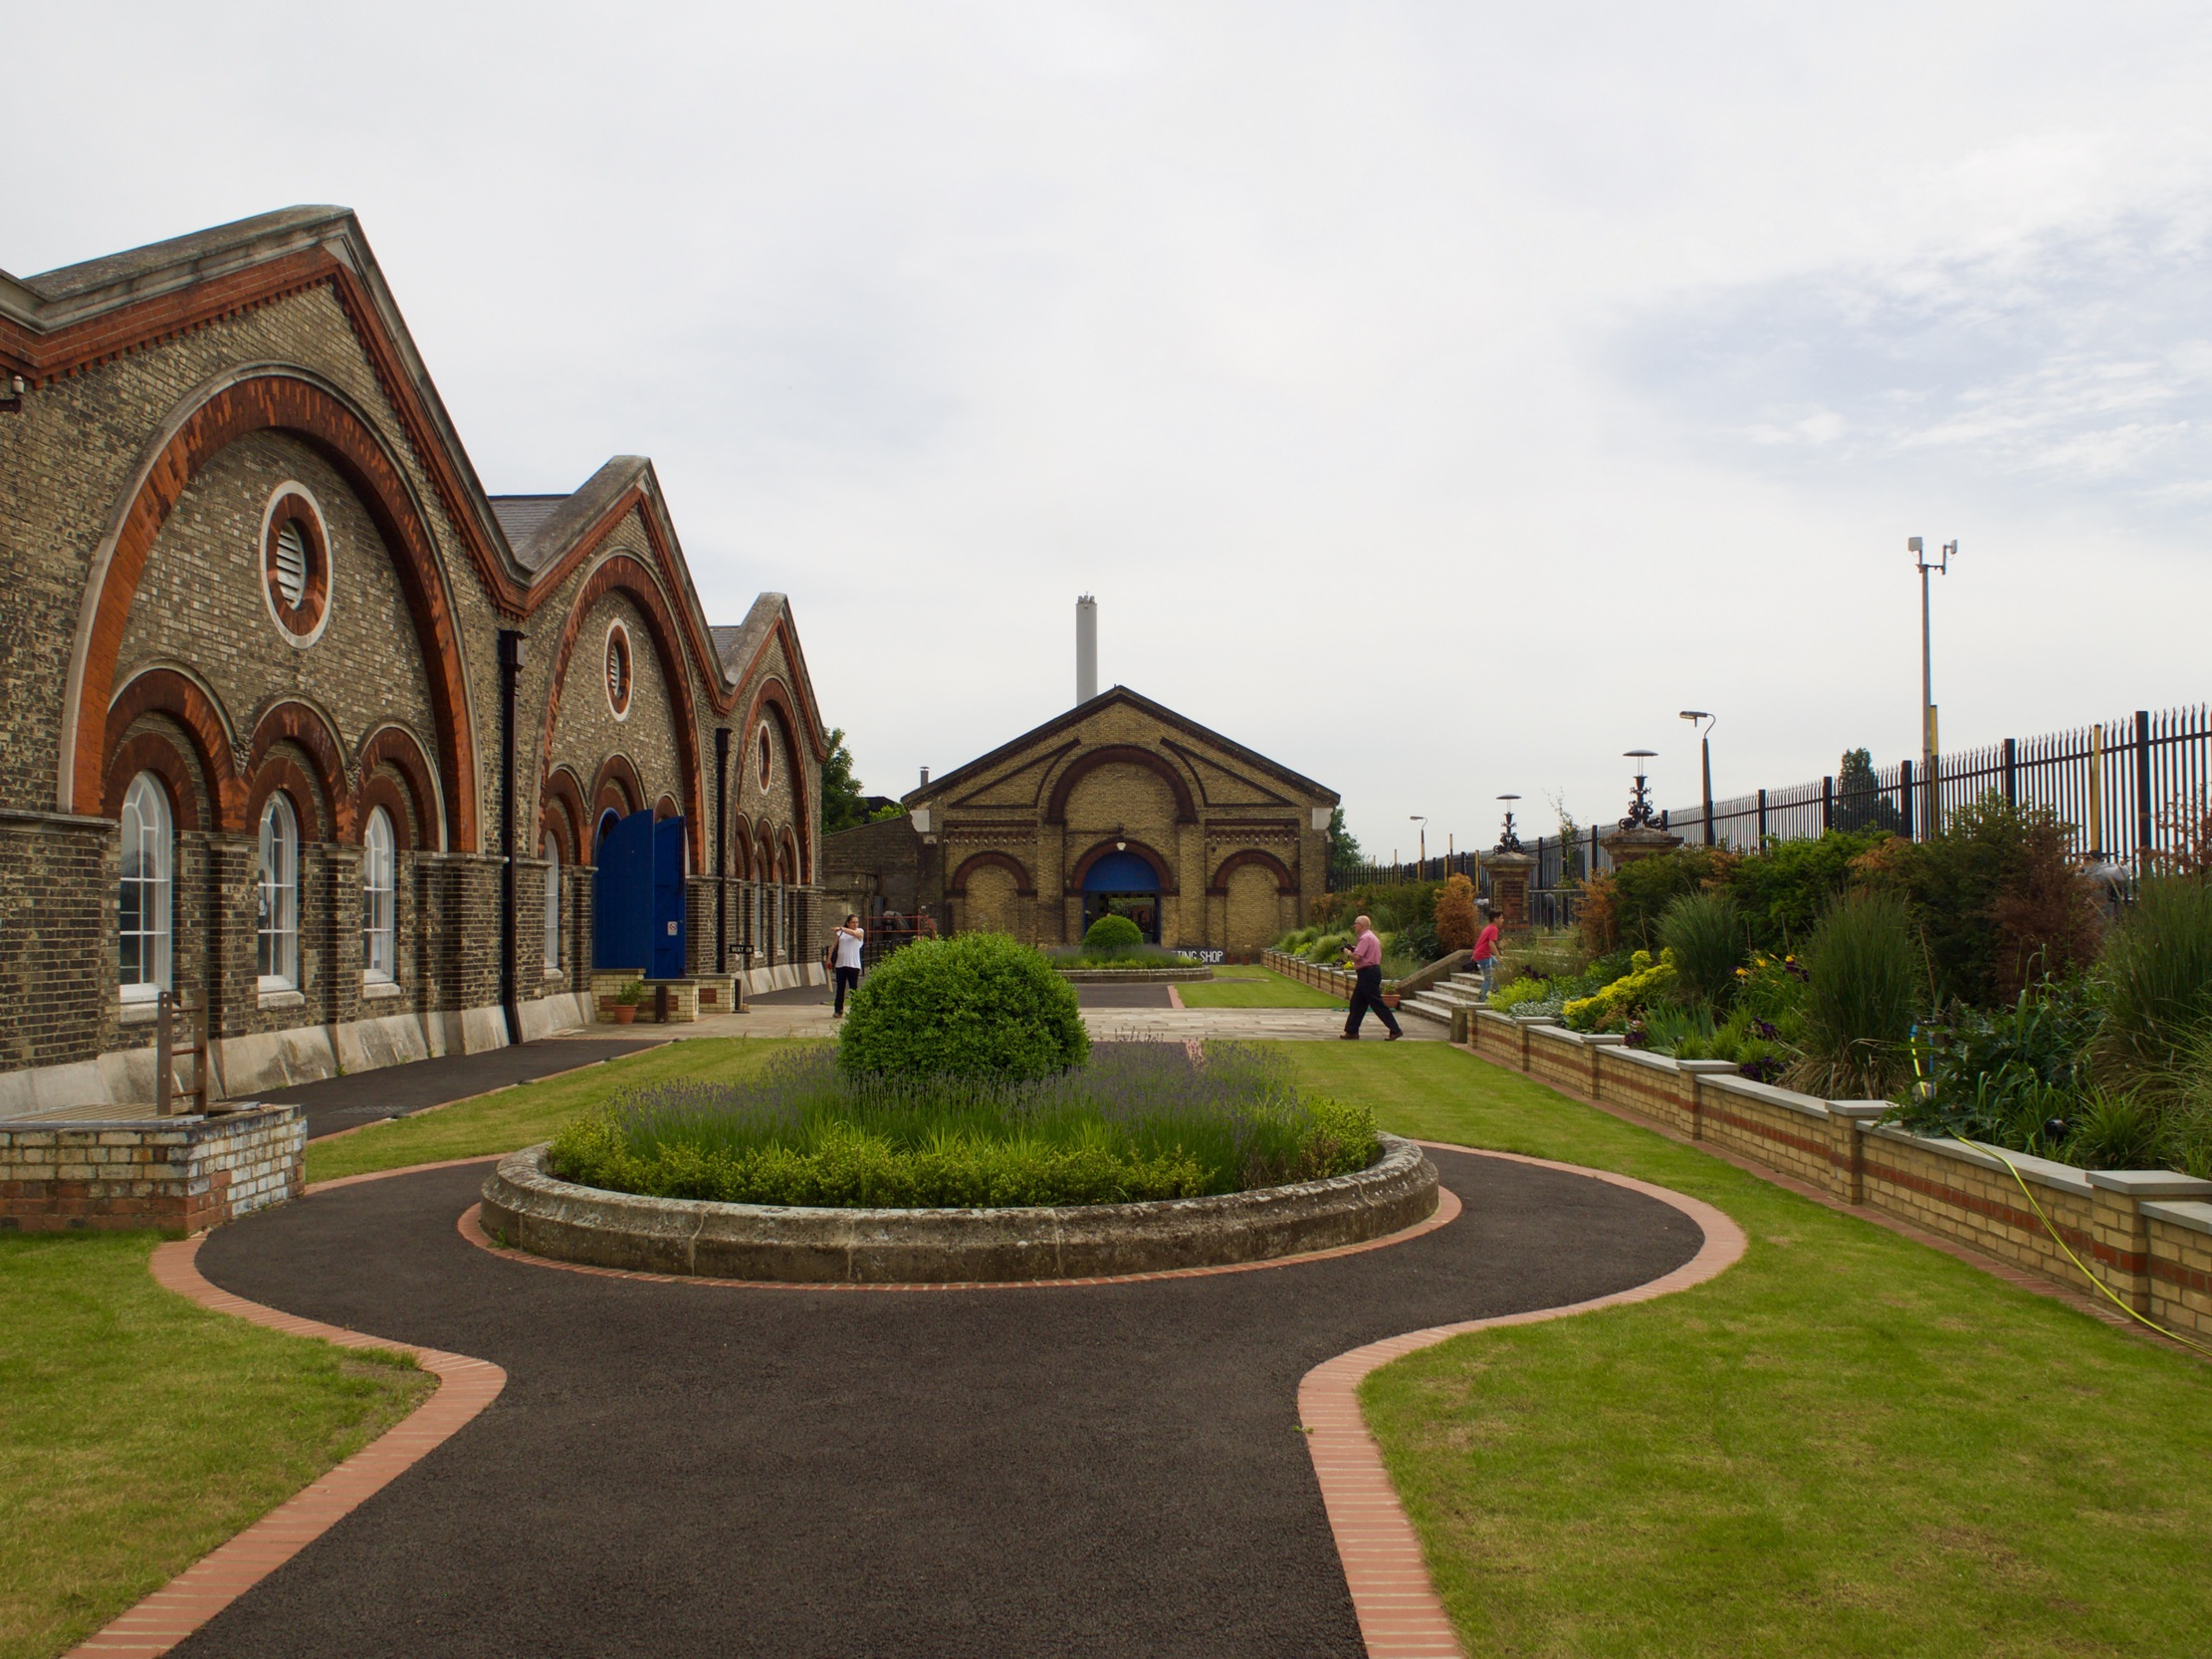 Looking onto a courtyard area with three buildings to the left, some grassy patches and another arched building in the distance.